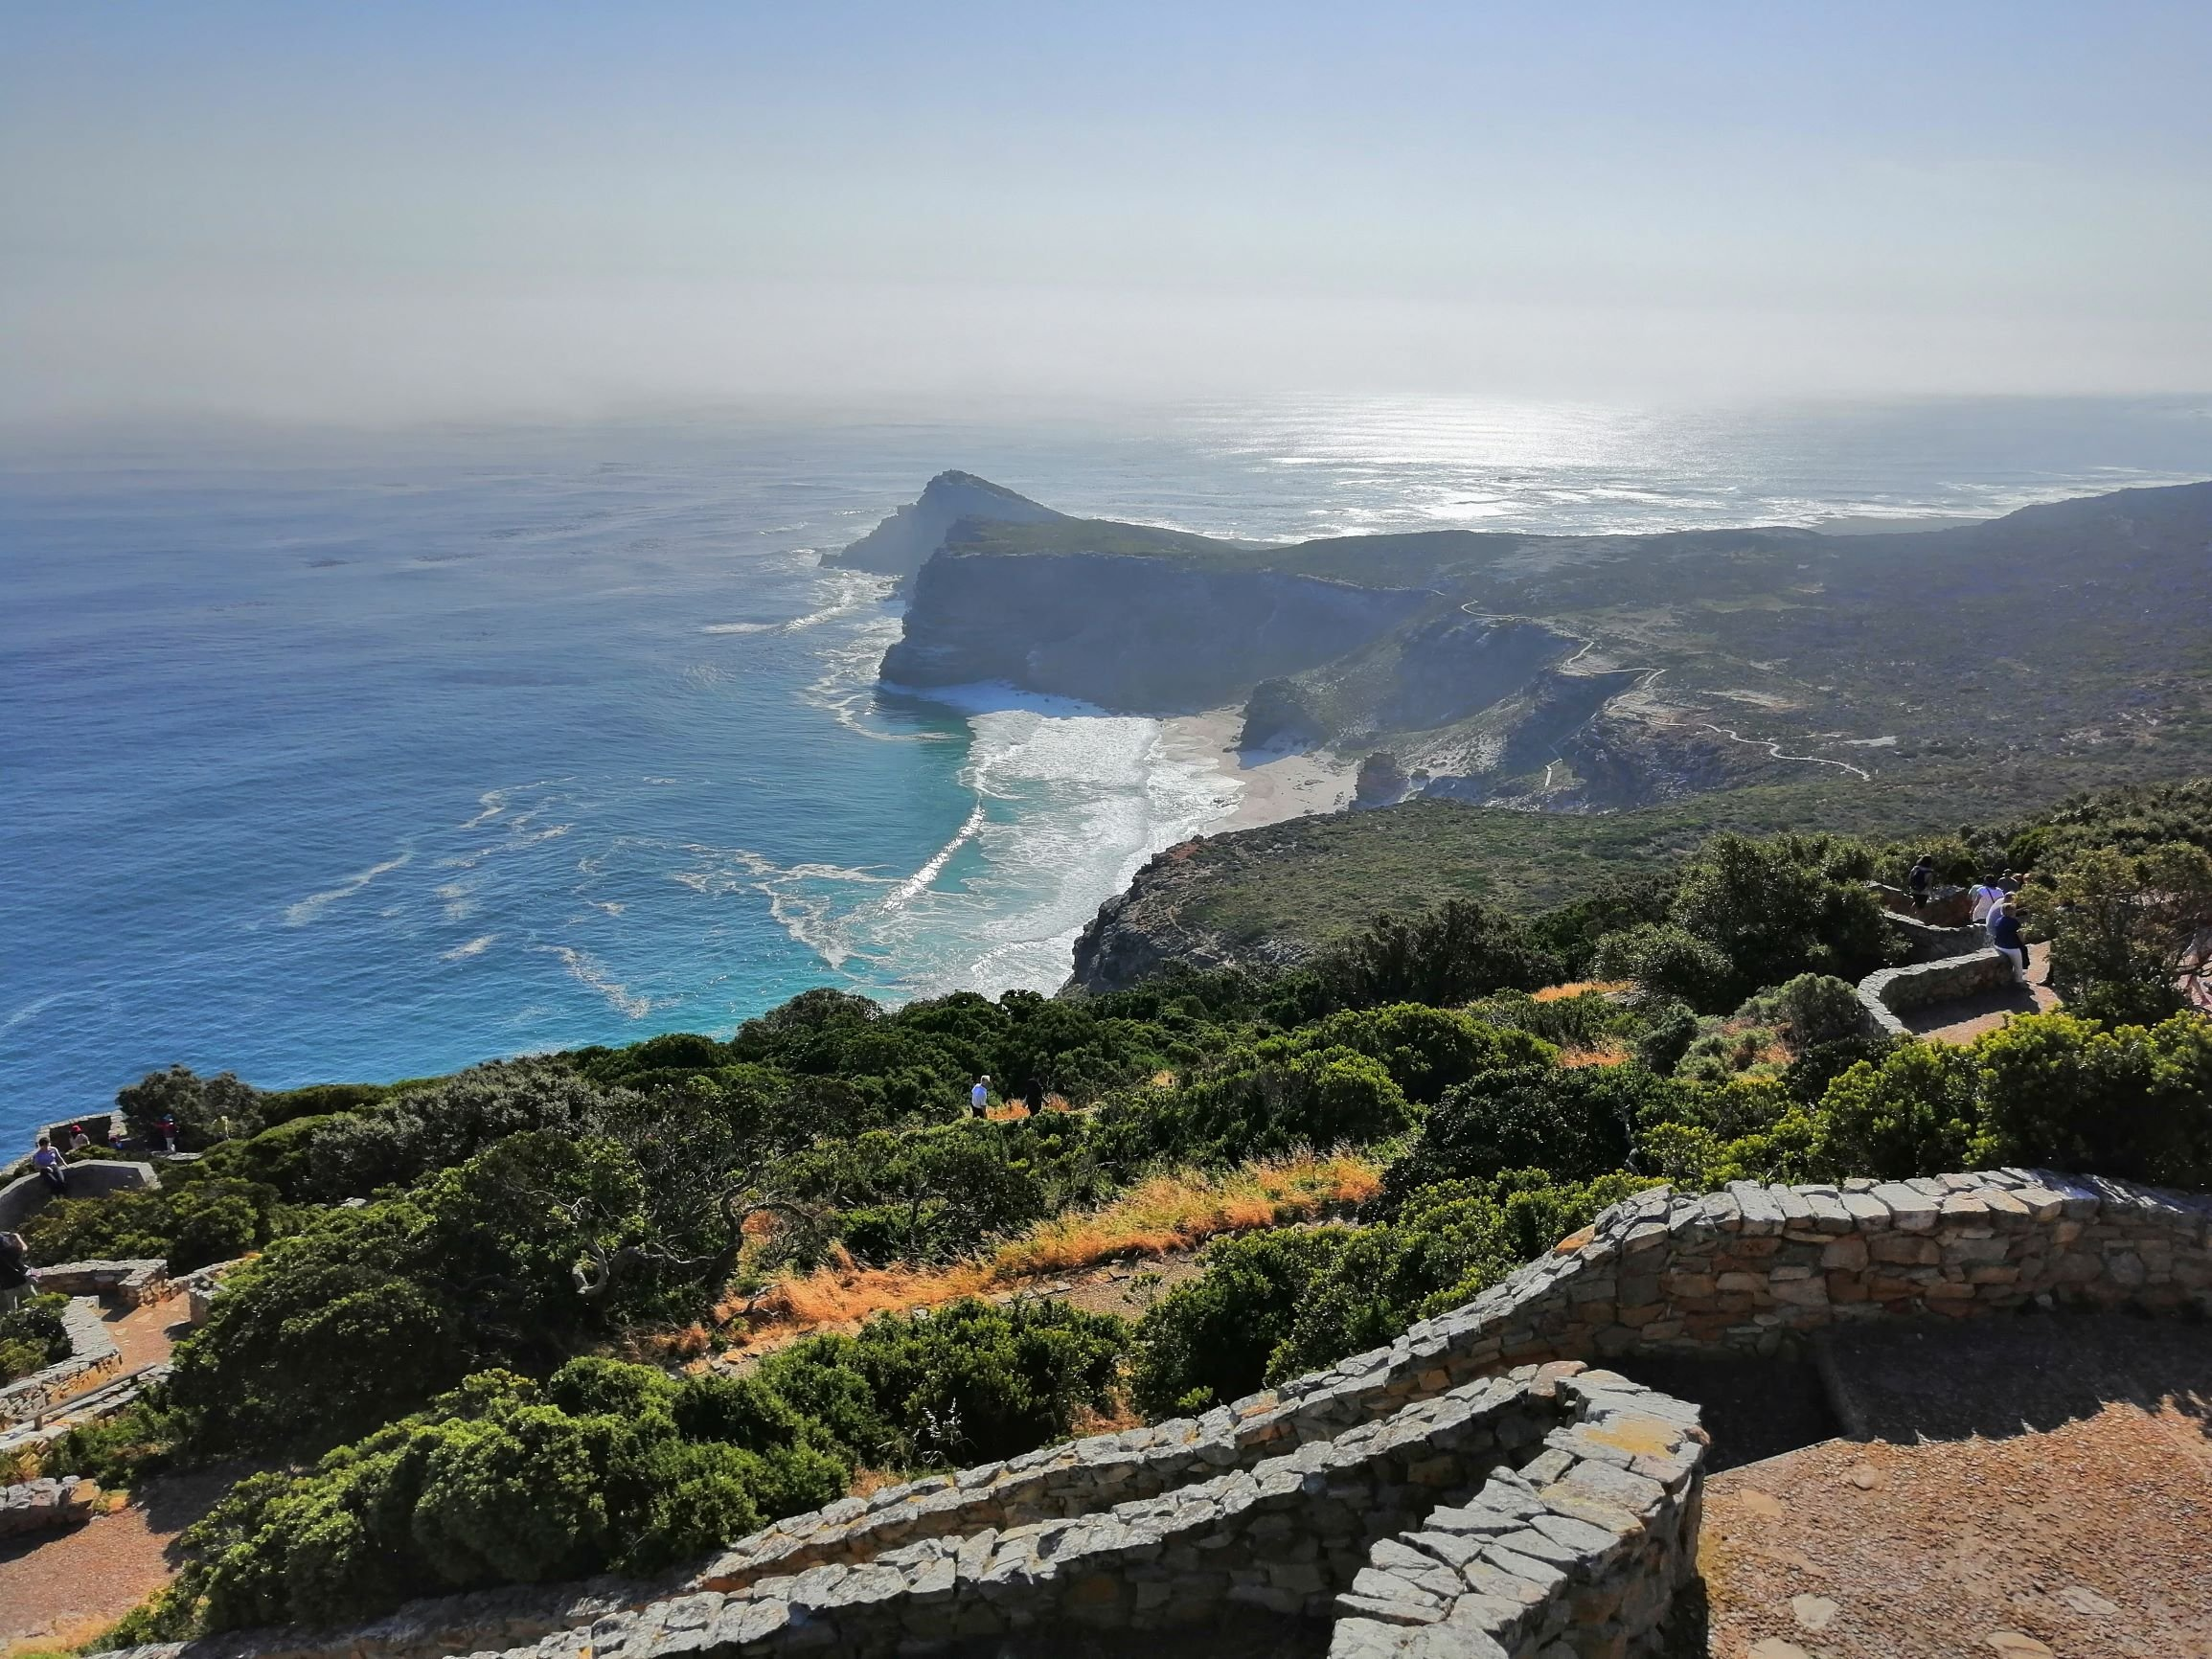 Day 3 | Cape Peninsula Excursion